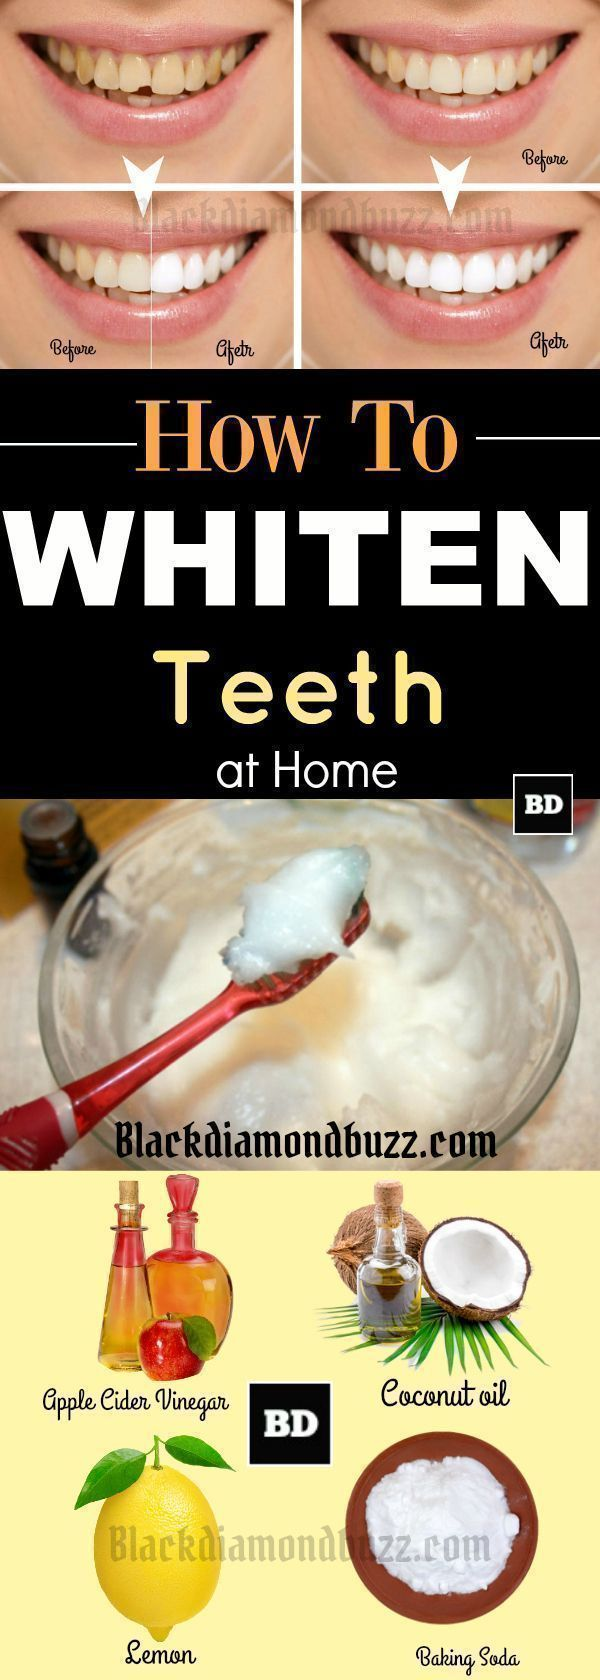 Do you want to make your teeth white fast and get rid of yellow teeth? Then here are how to whiten your teeth in 5 minutes naturally. These home remedies for whiter teeth work instantly . Try it! #teethwhiteninghomeremedies #howtowhitenyourteeth #howtonaturallywhitenteeth #howtowhitenteeth #naturalteethwhitening